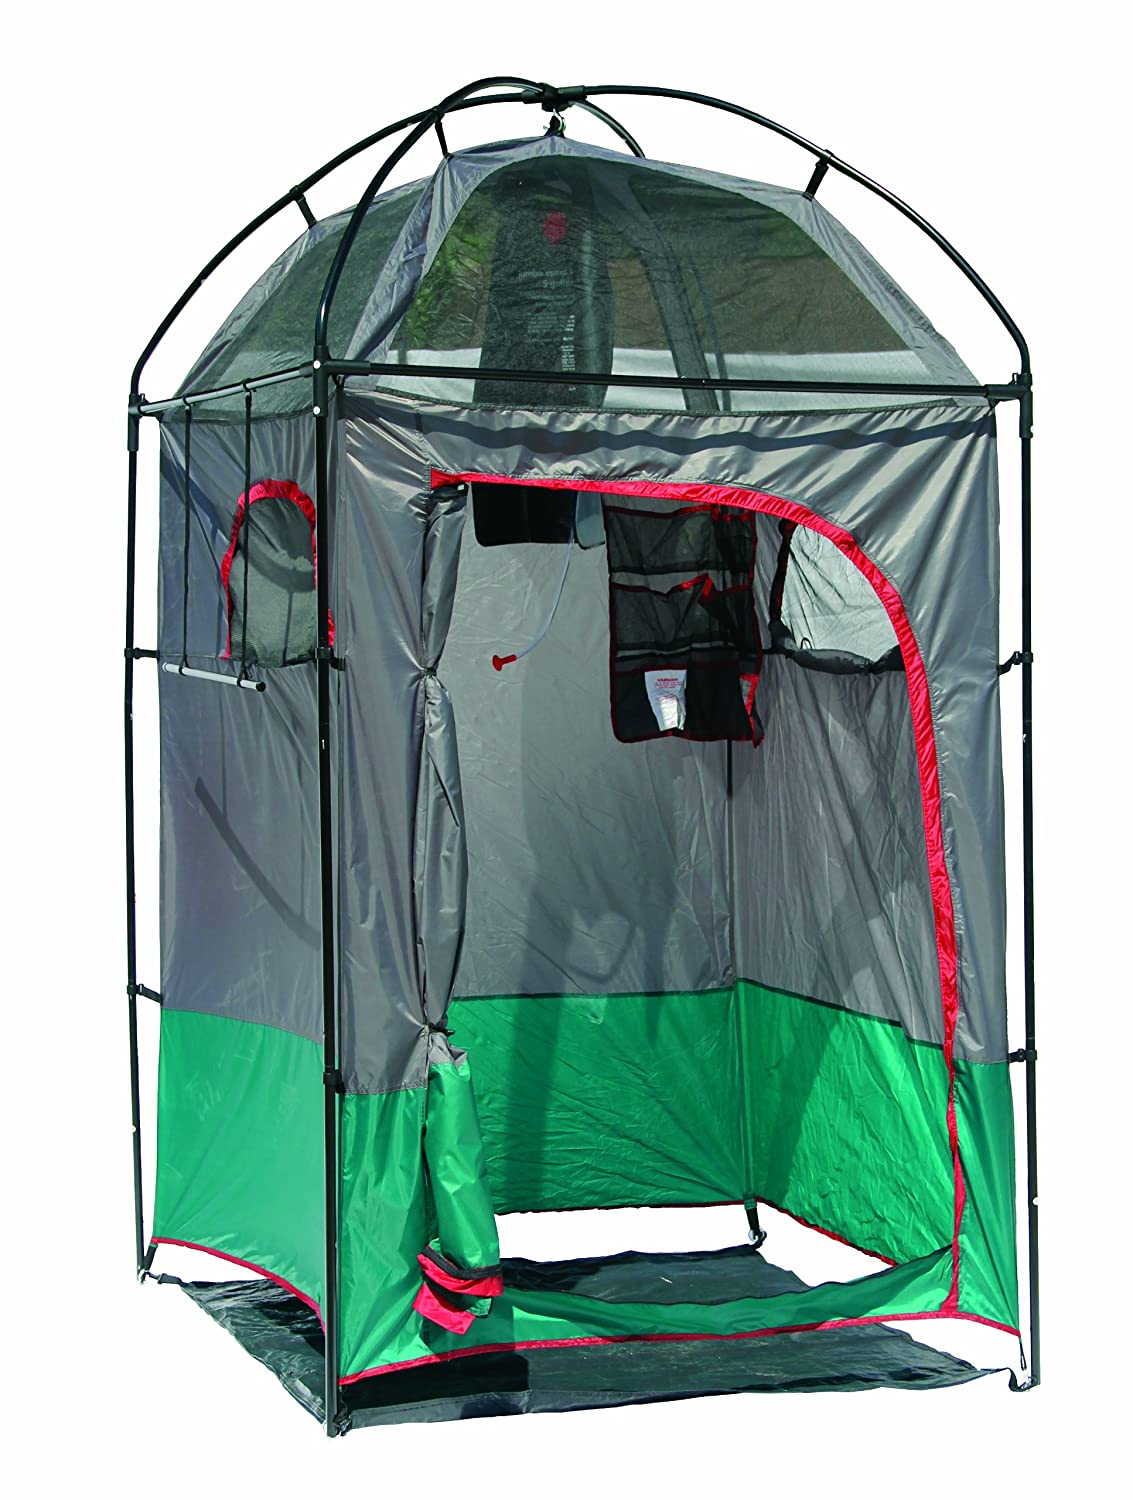 Amazon.com Texsport Instant Portable Outdoor C&ing Shower Privacy Shelter Changing Room Sports u0026 Outdoors  sc 1 st  Amazon.com & Amazon.com: Texsport Instant Portable Outdoor Camping Shower ...